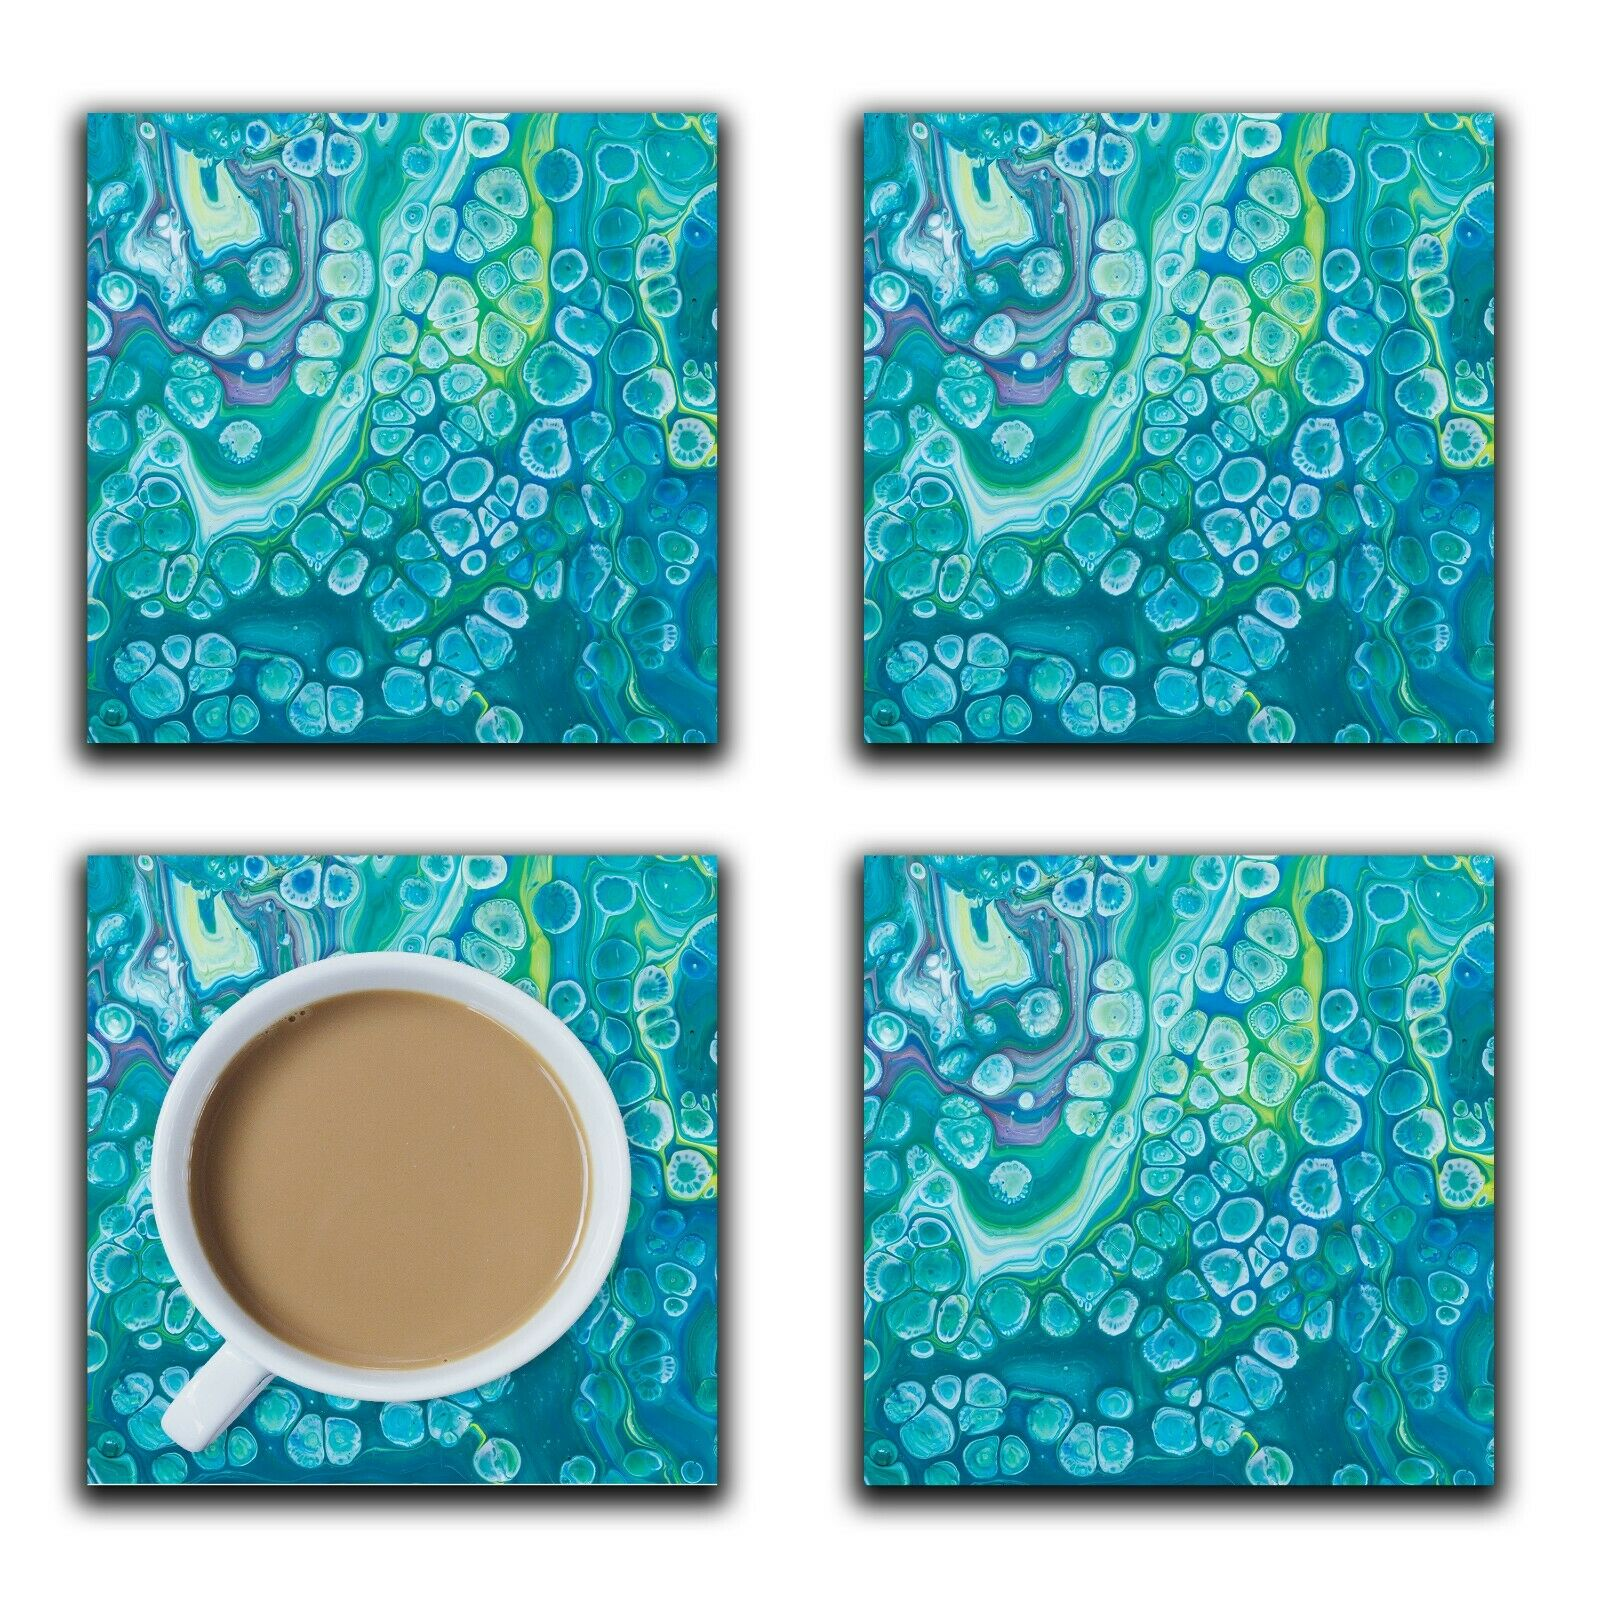 Embossi Printed Blue Cells Acrylic Pour Art, wood or ceramic tile, set of 4 Coasters